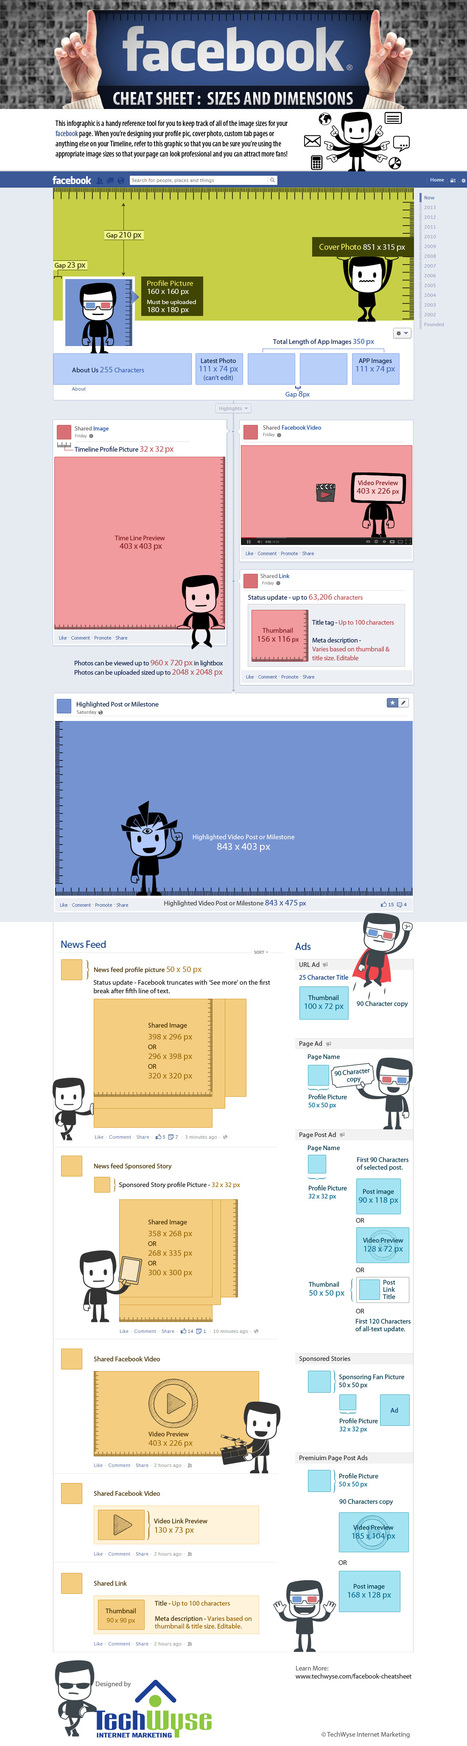 Facebook Cheat Sheet: Image Size and Dimensions | HTML5 CSS3 | Scoop.it